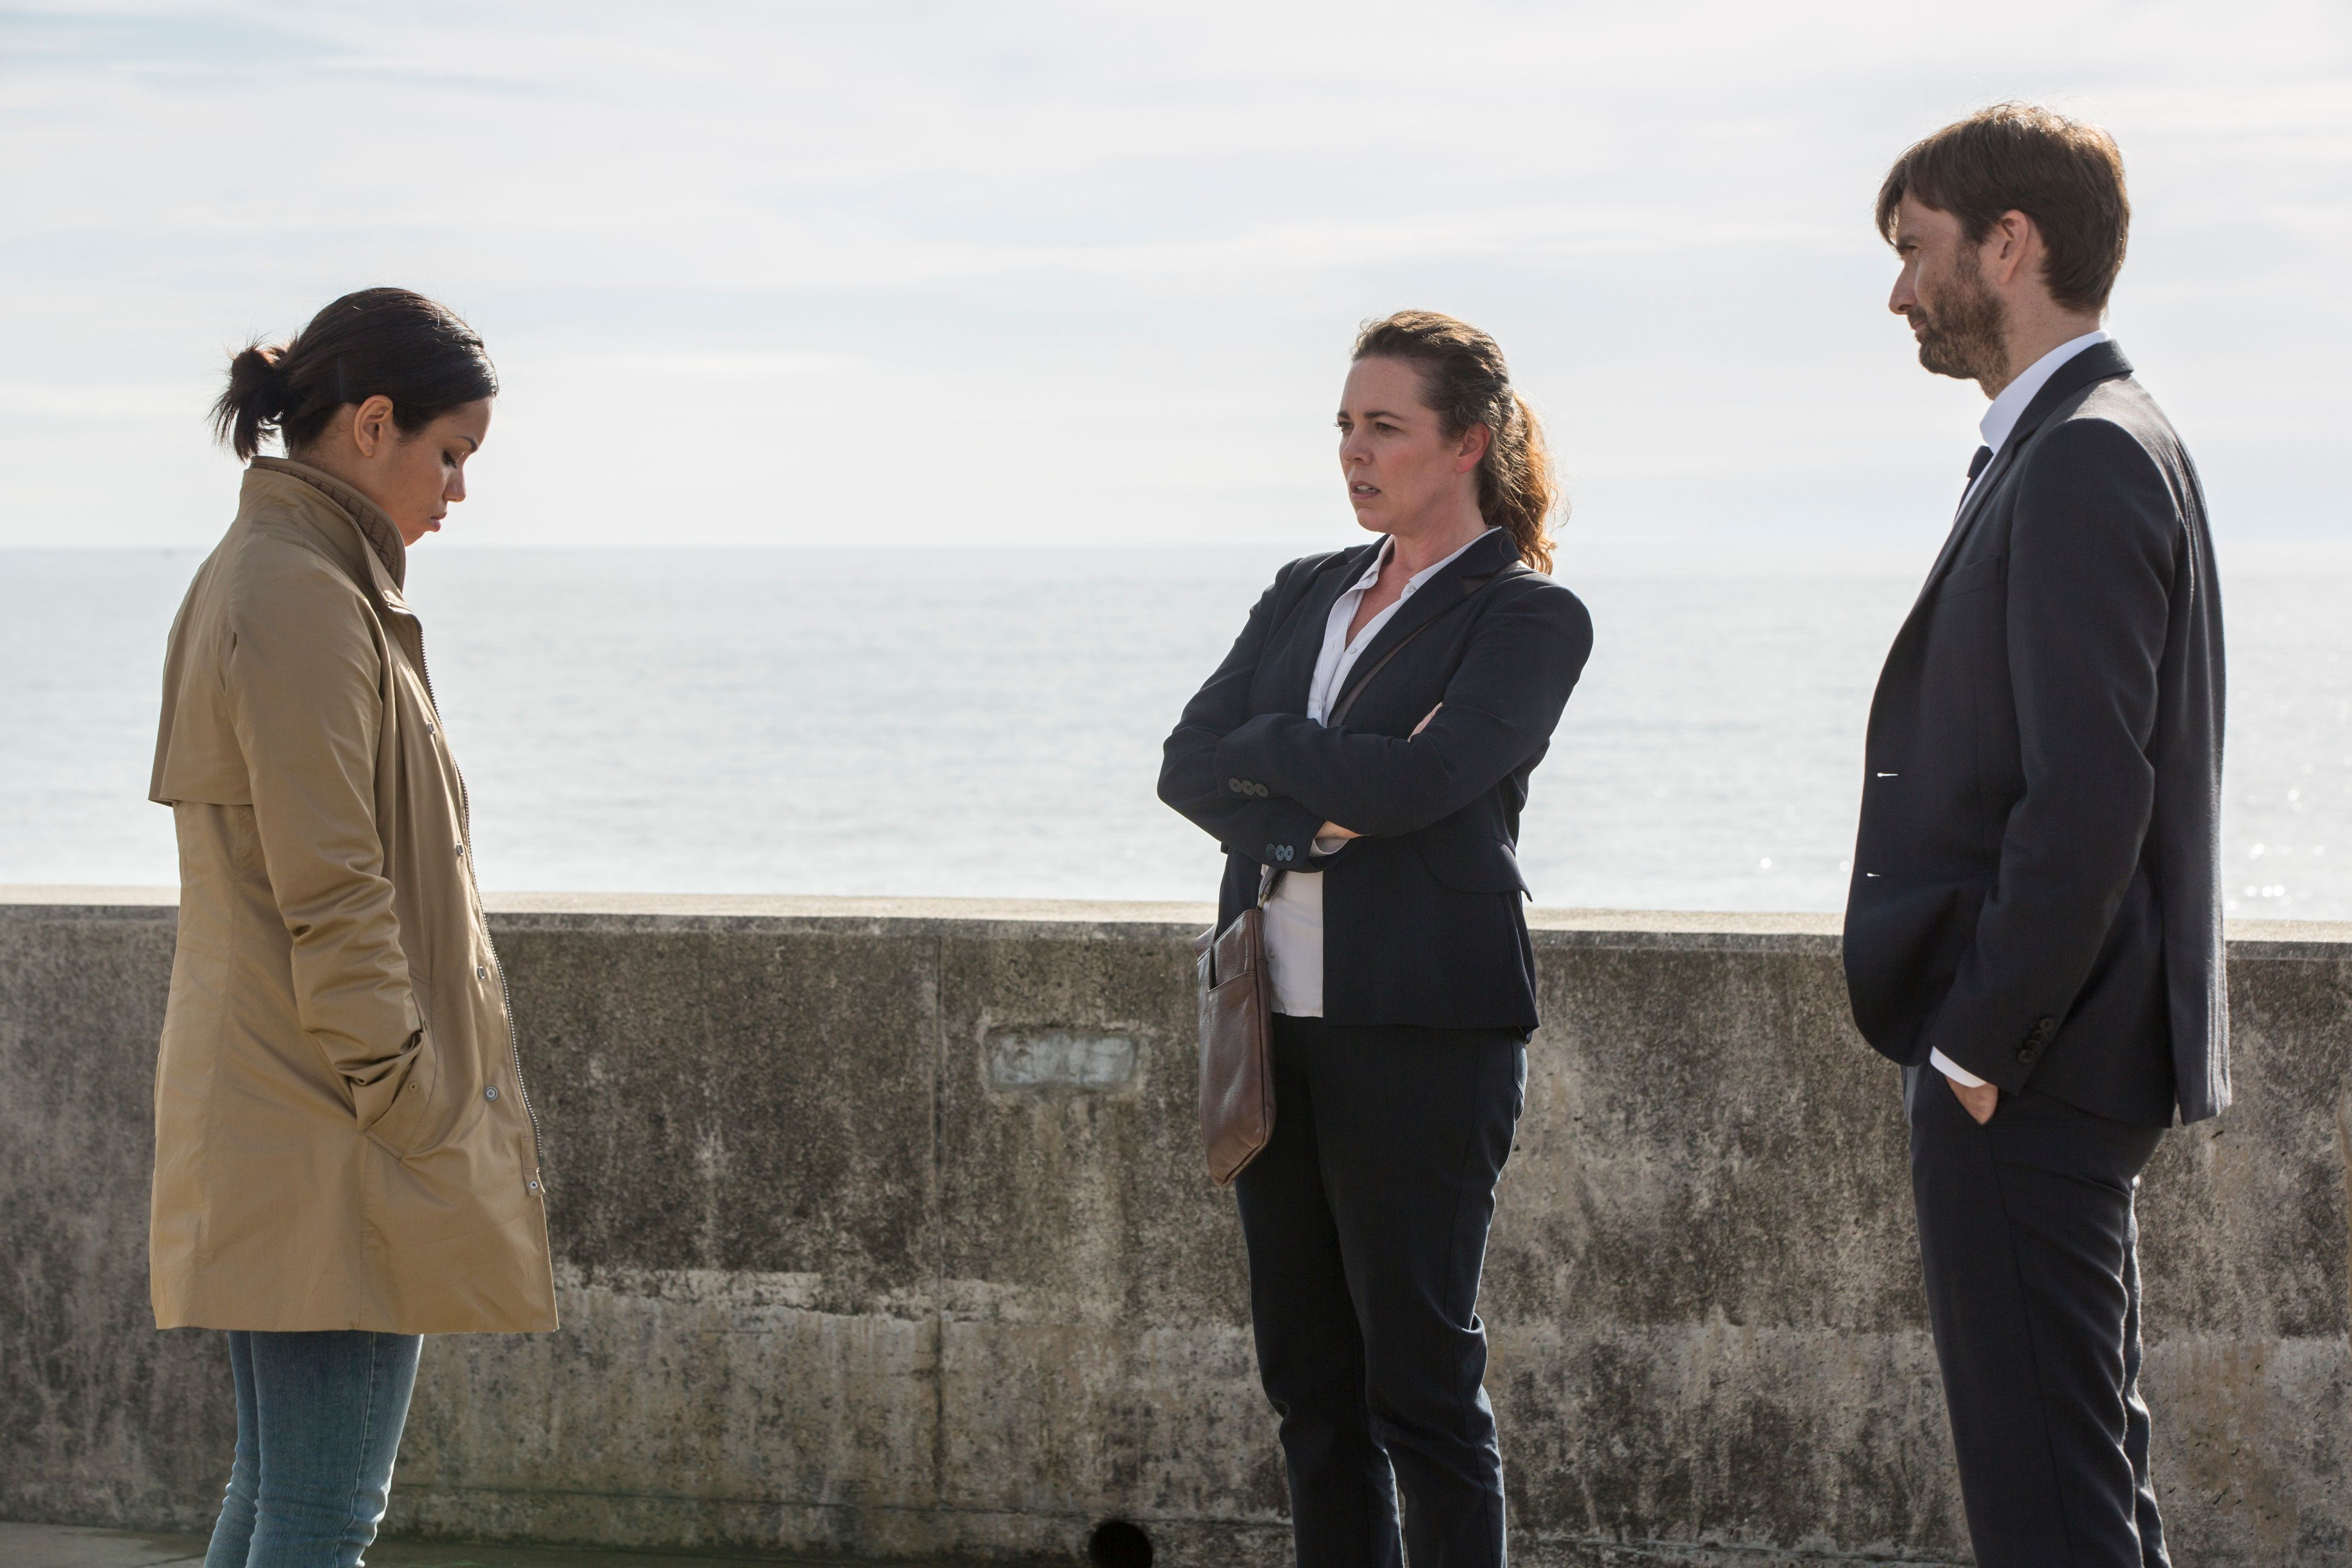 Detectives Miller and Hardy have a showdown with their colleague Kate this